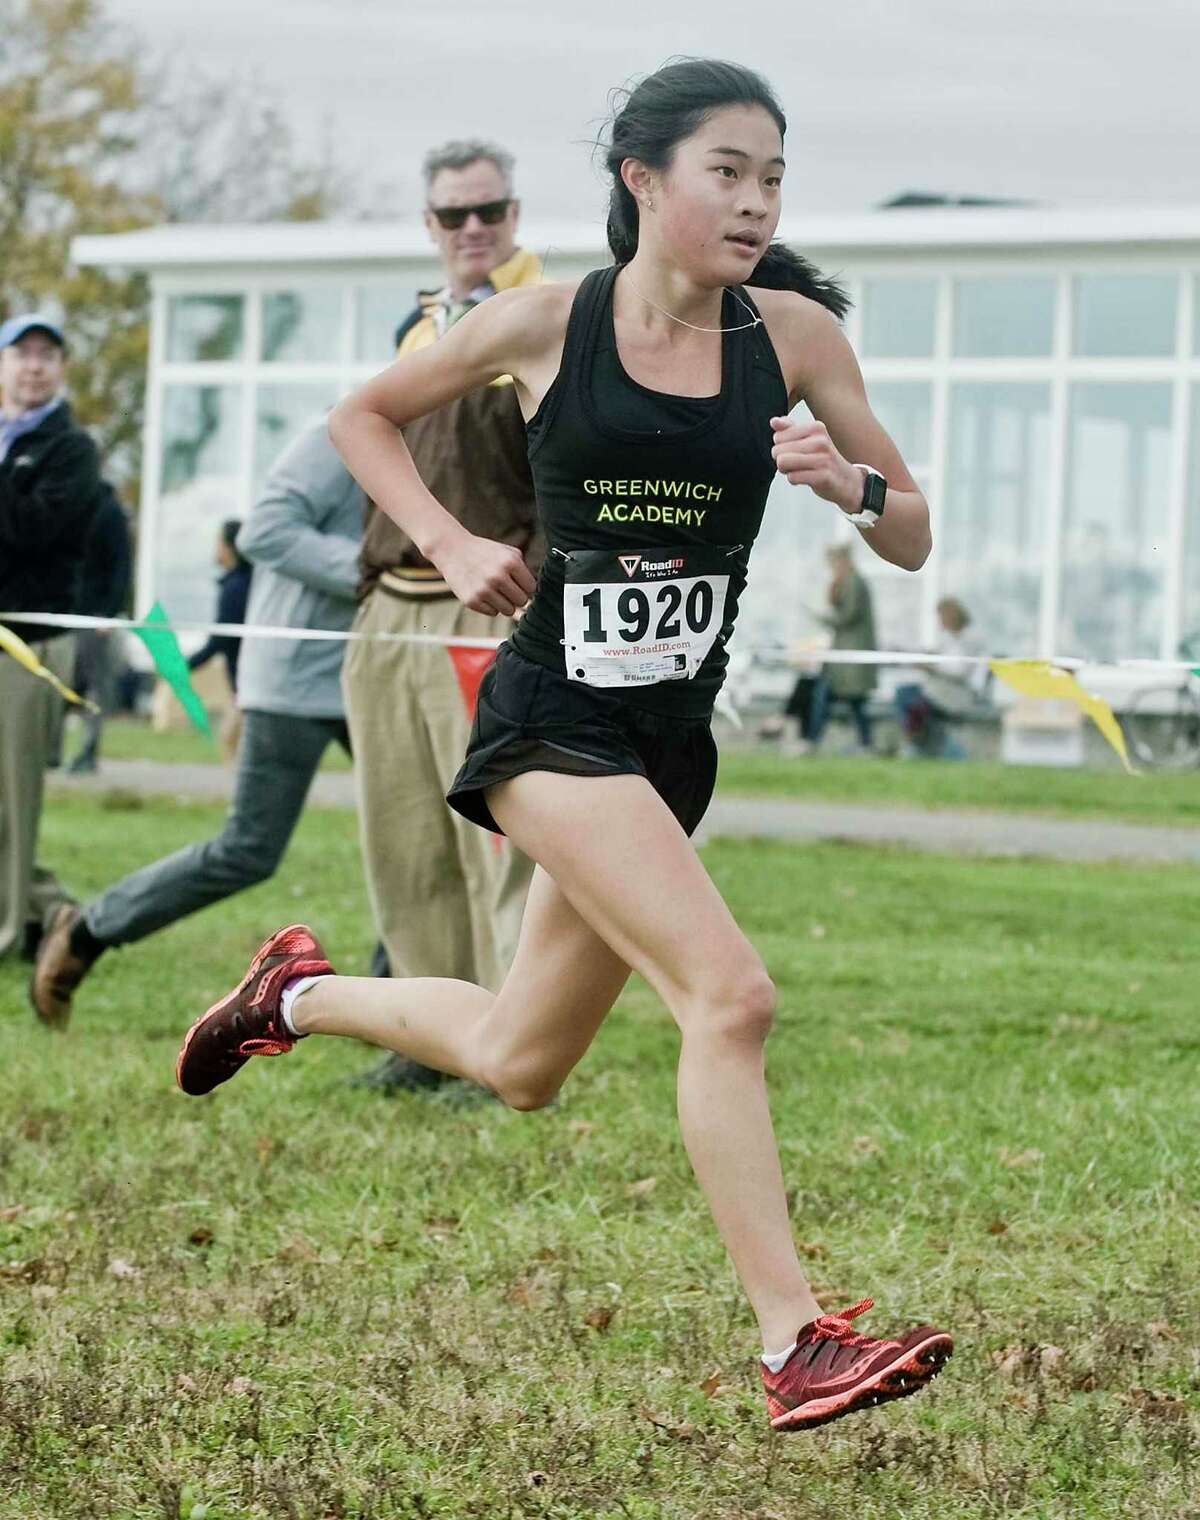 Maddy Lee, of Greenwich Academy, winning the FAA Girls Cross Country Championships at Sherwood Island in Westport. Monday, Oct. 28, 2019